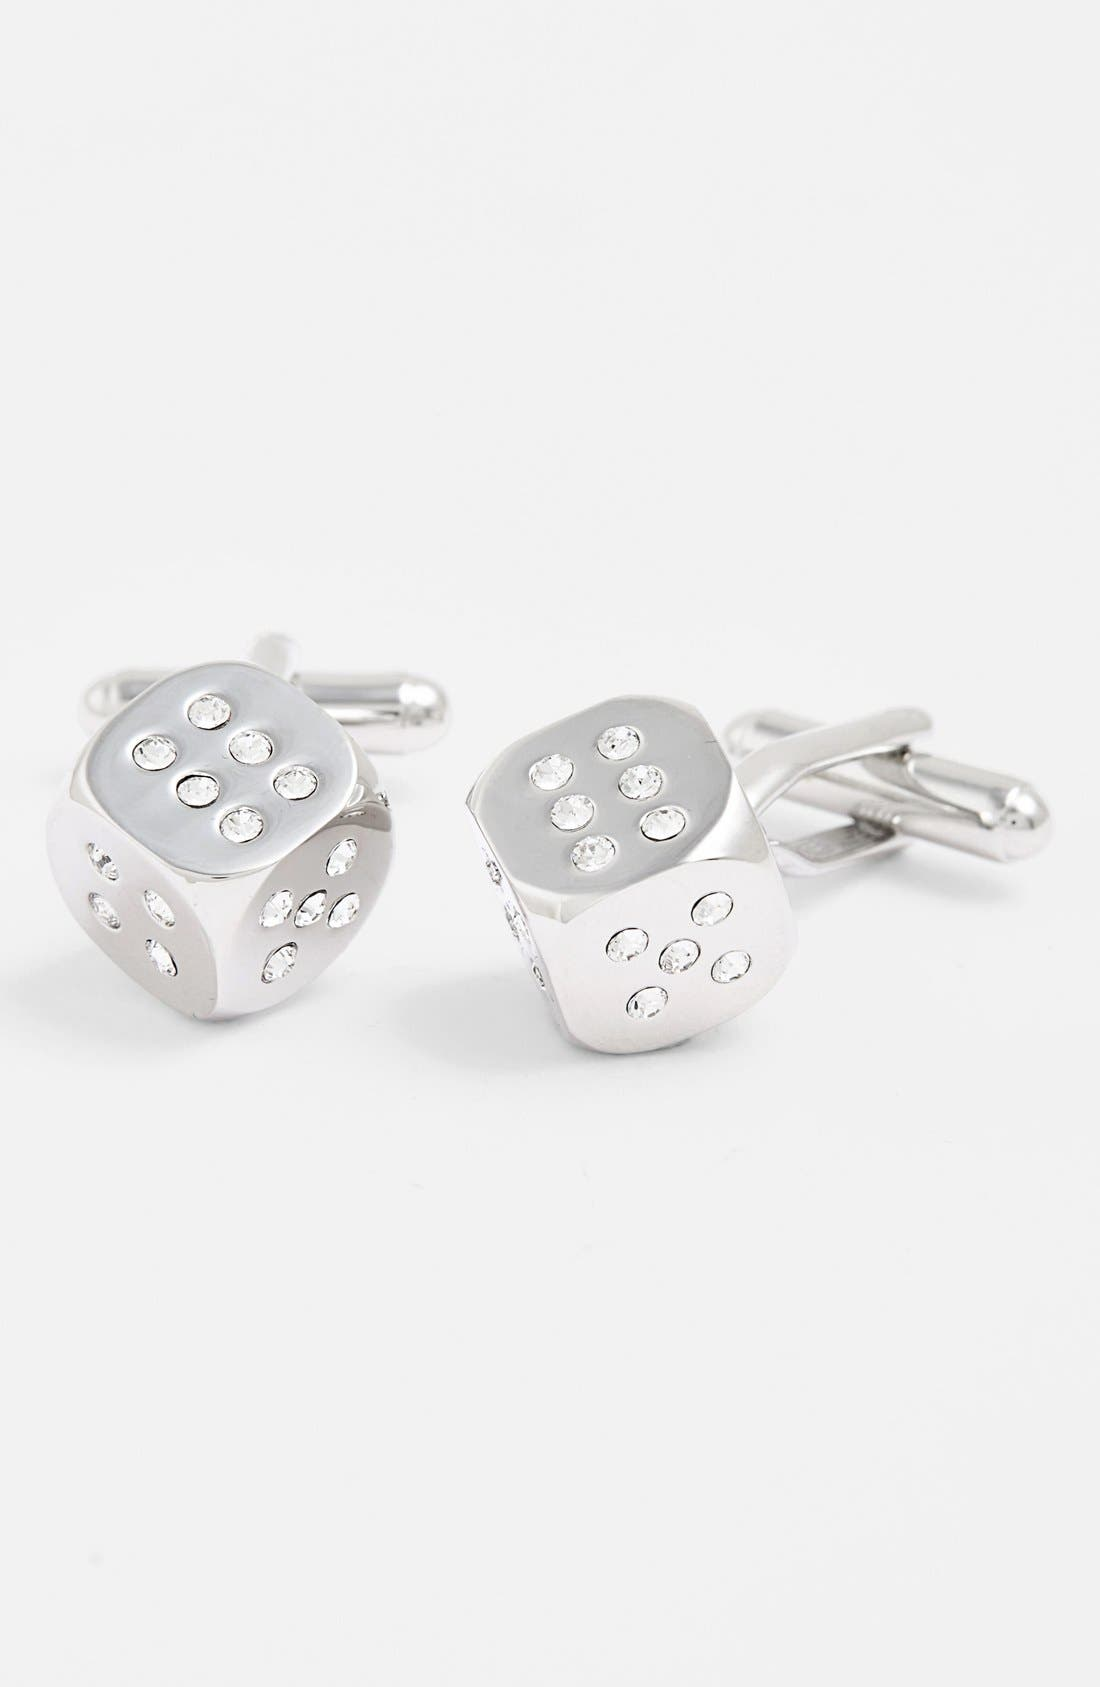 LINK UP Dice Cuff Links